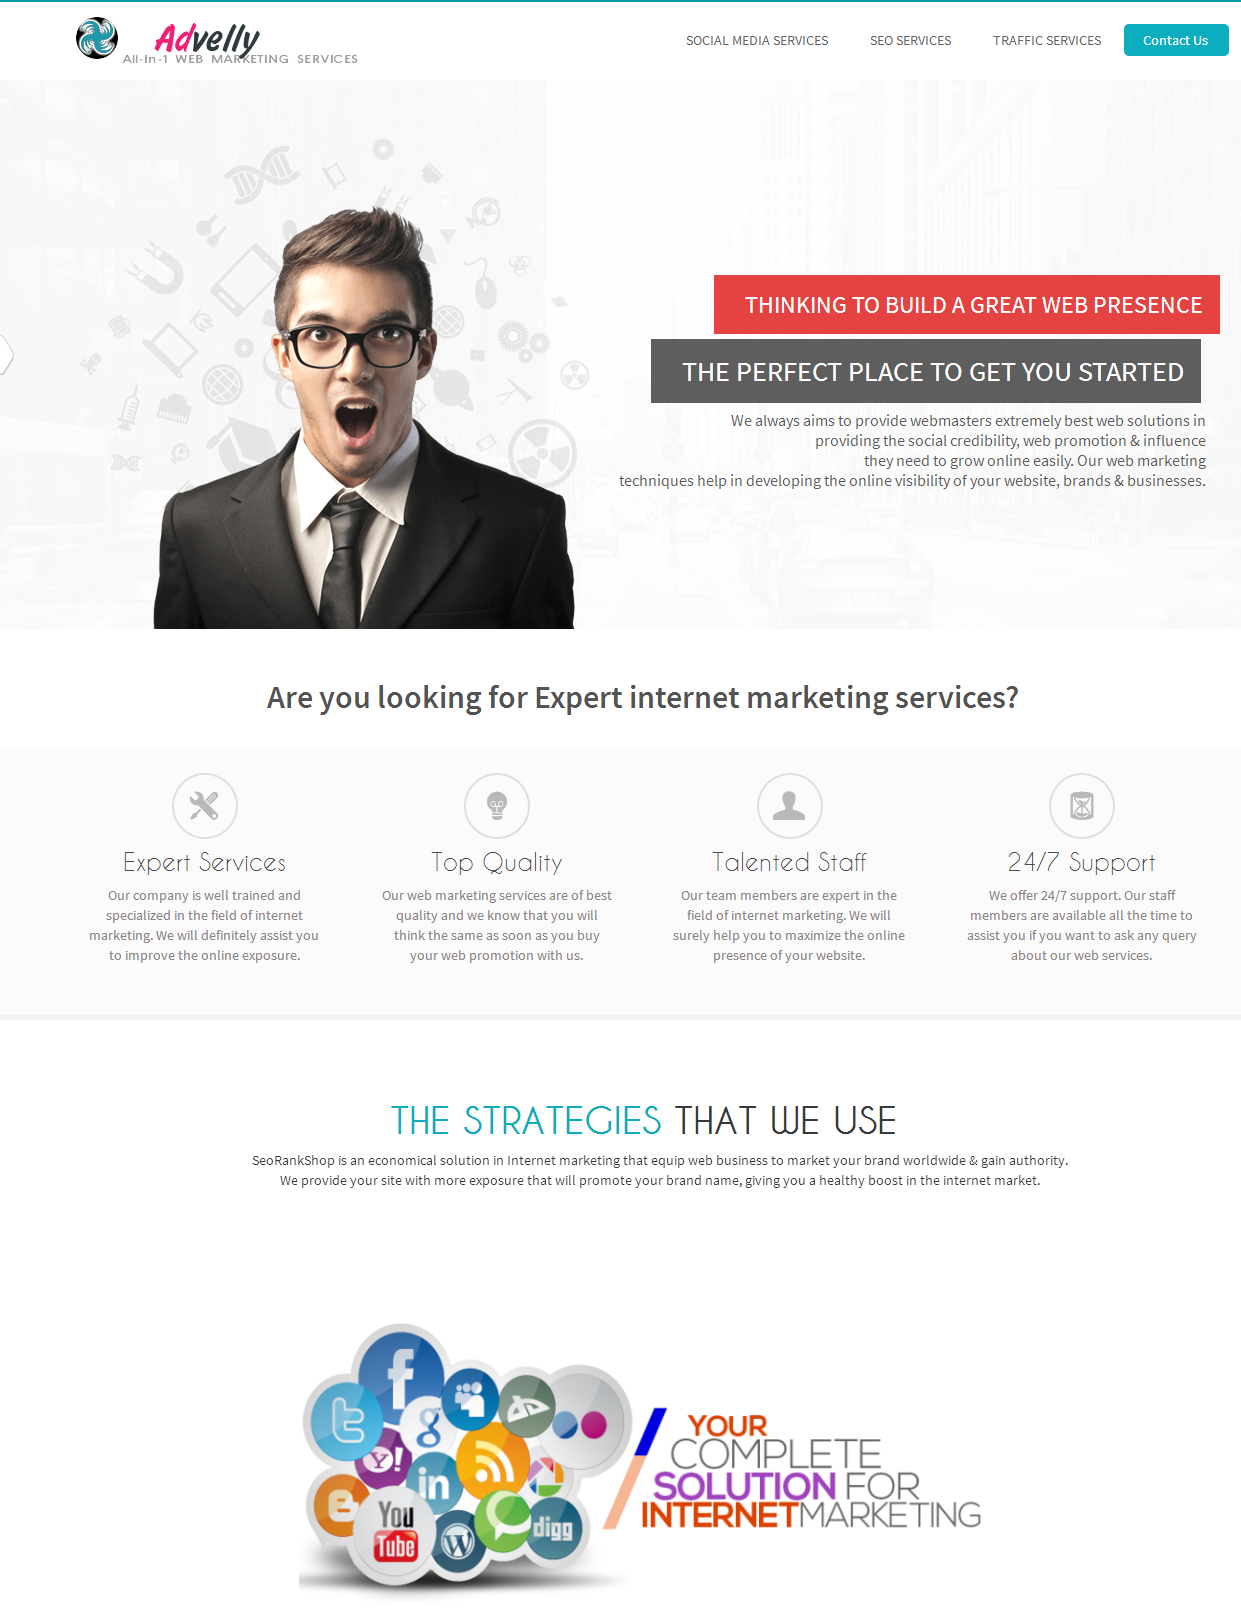 All in One Web Marketing Service